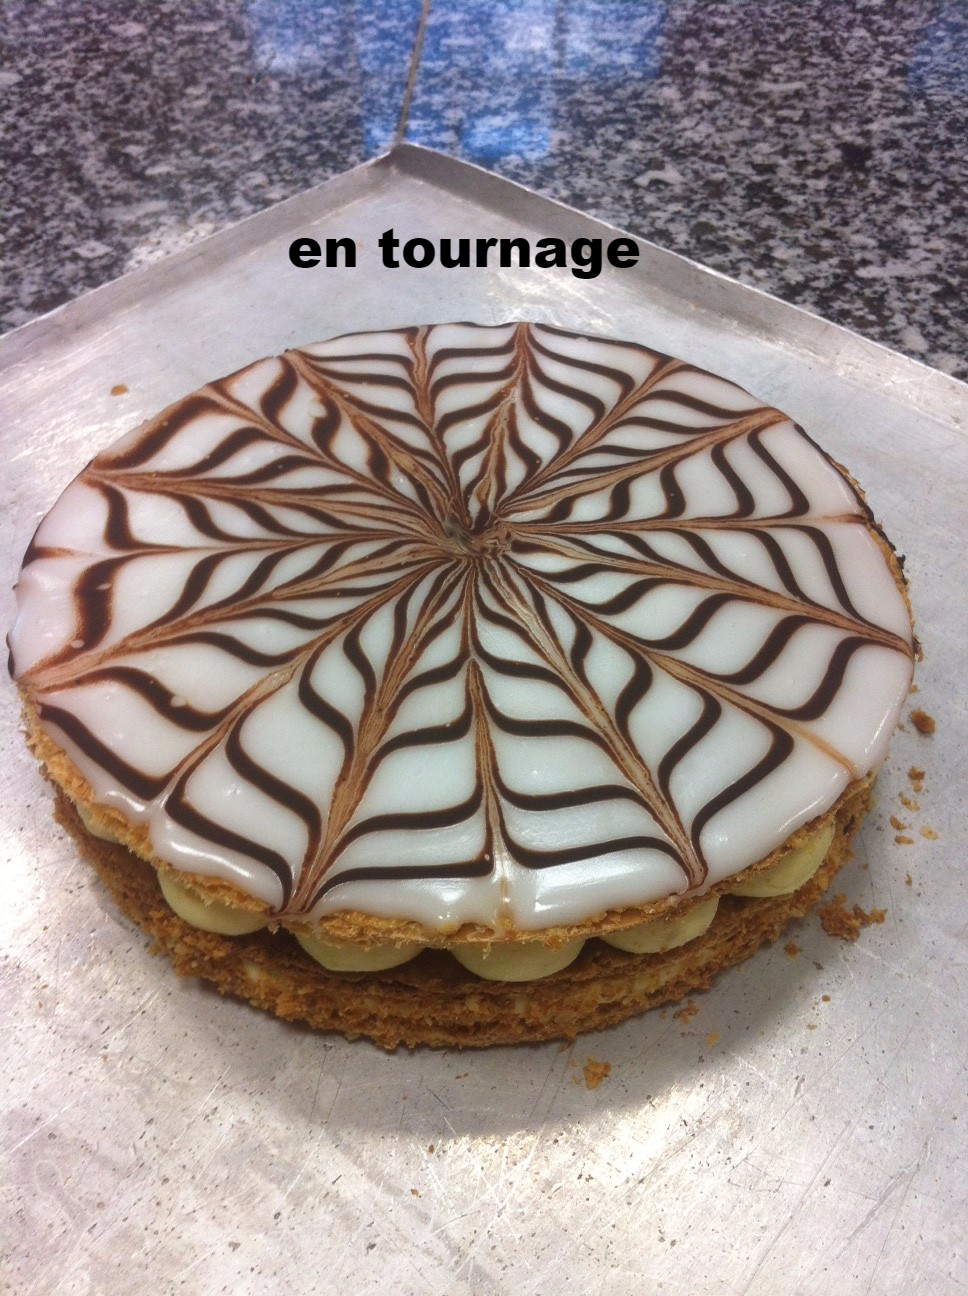 mille feuille 02_edited.JPG